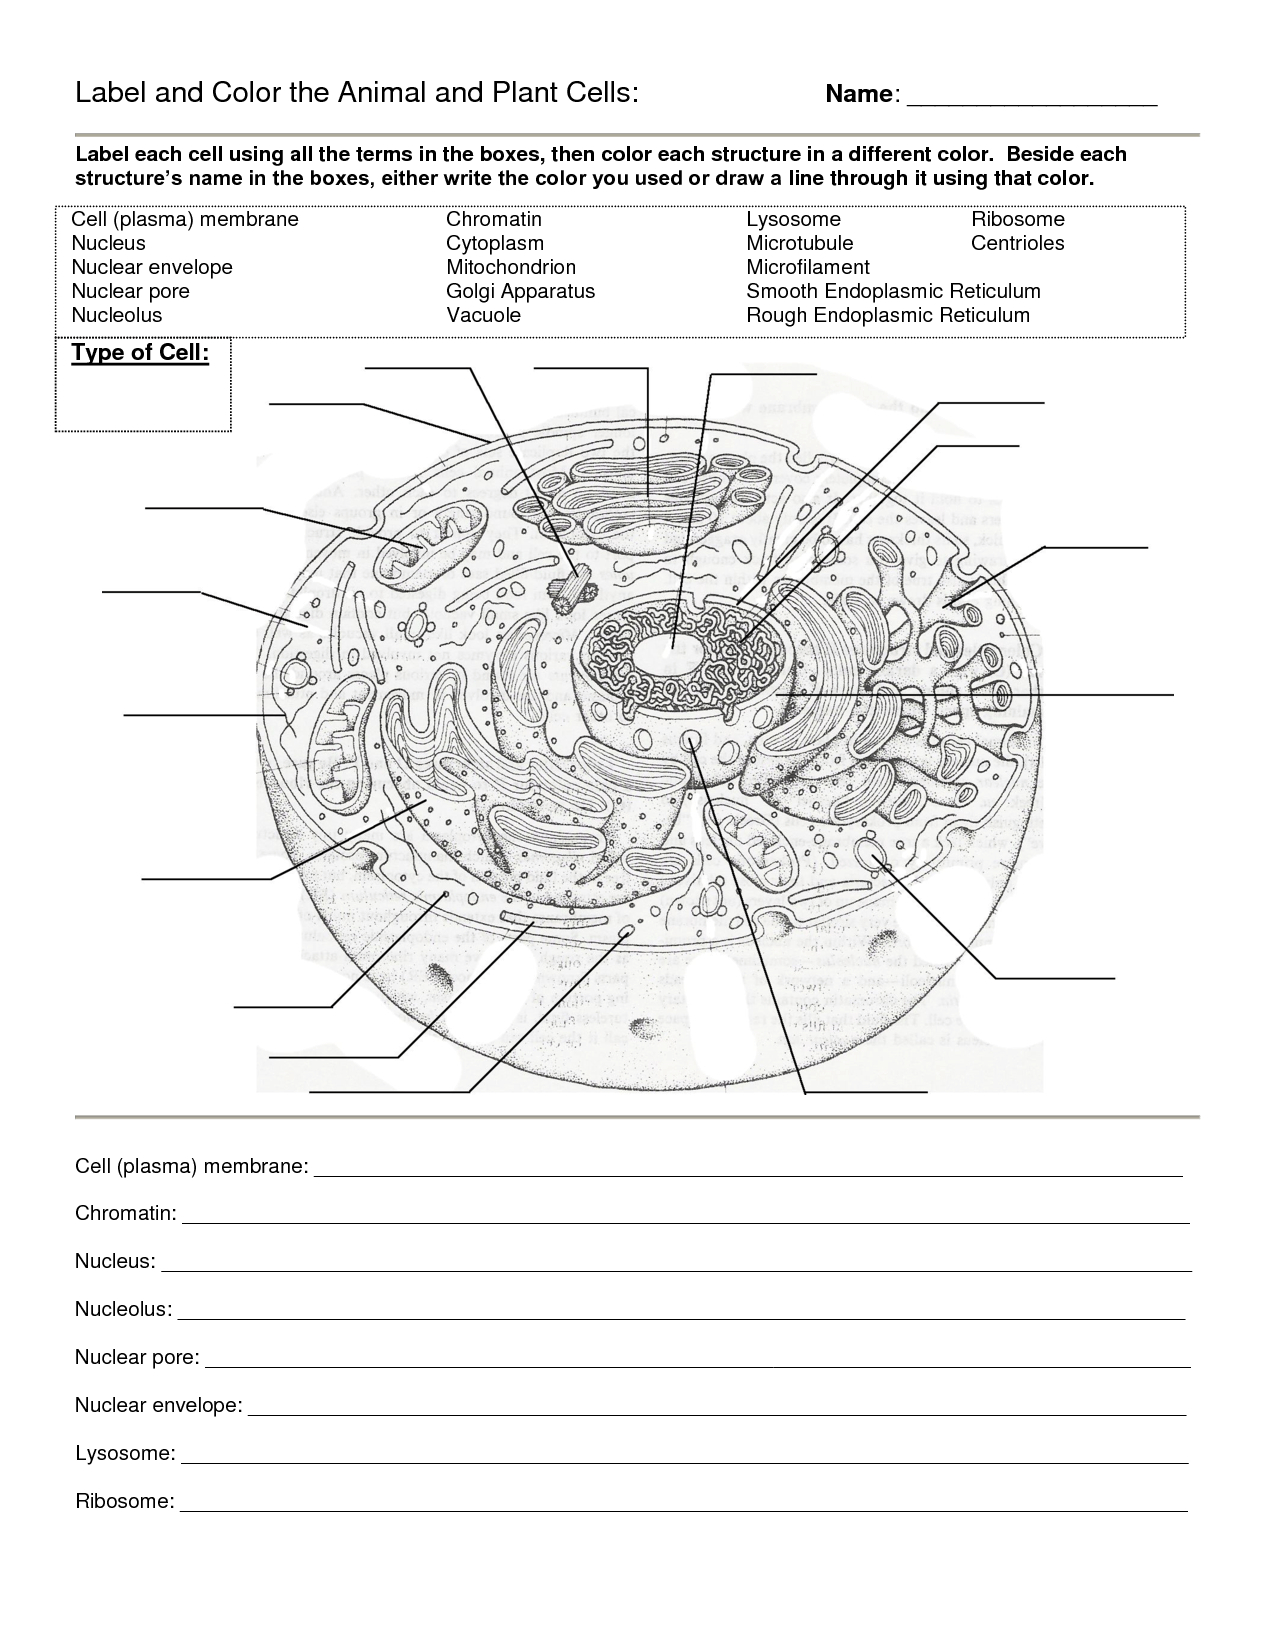 Worksheet : Animal Cell Coloring Worksheet Answers Animal And Plant - Free Printable Cell Worksheets